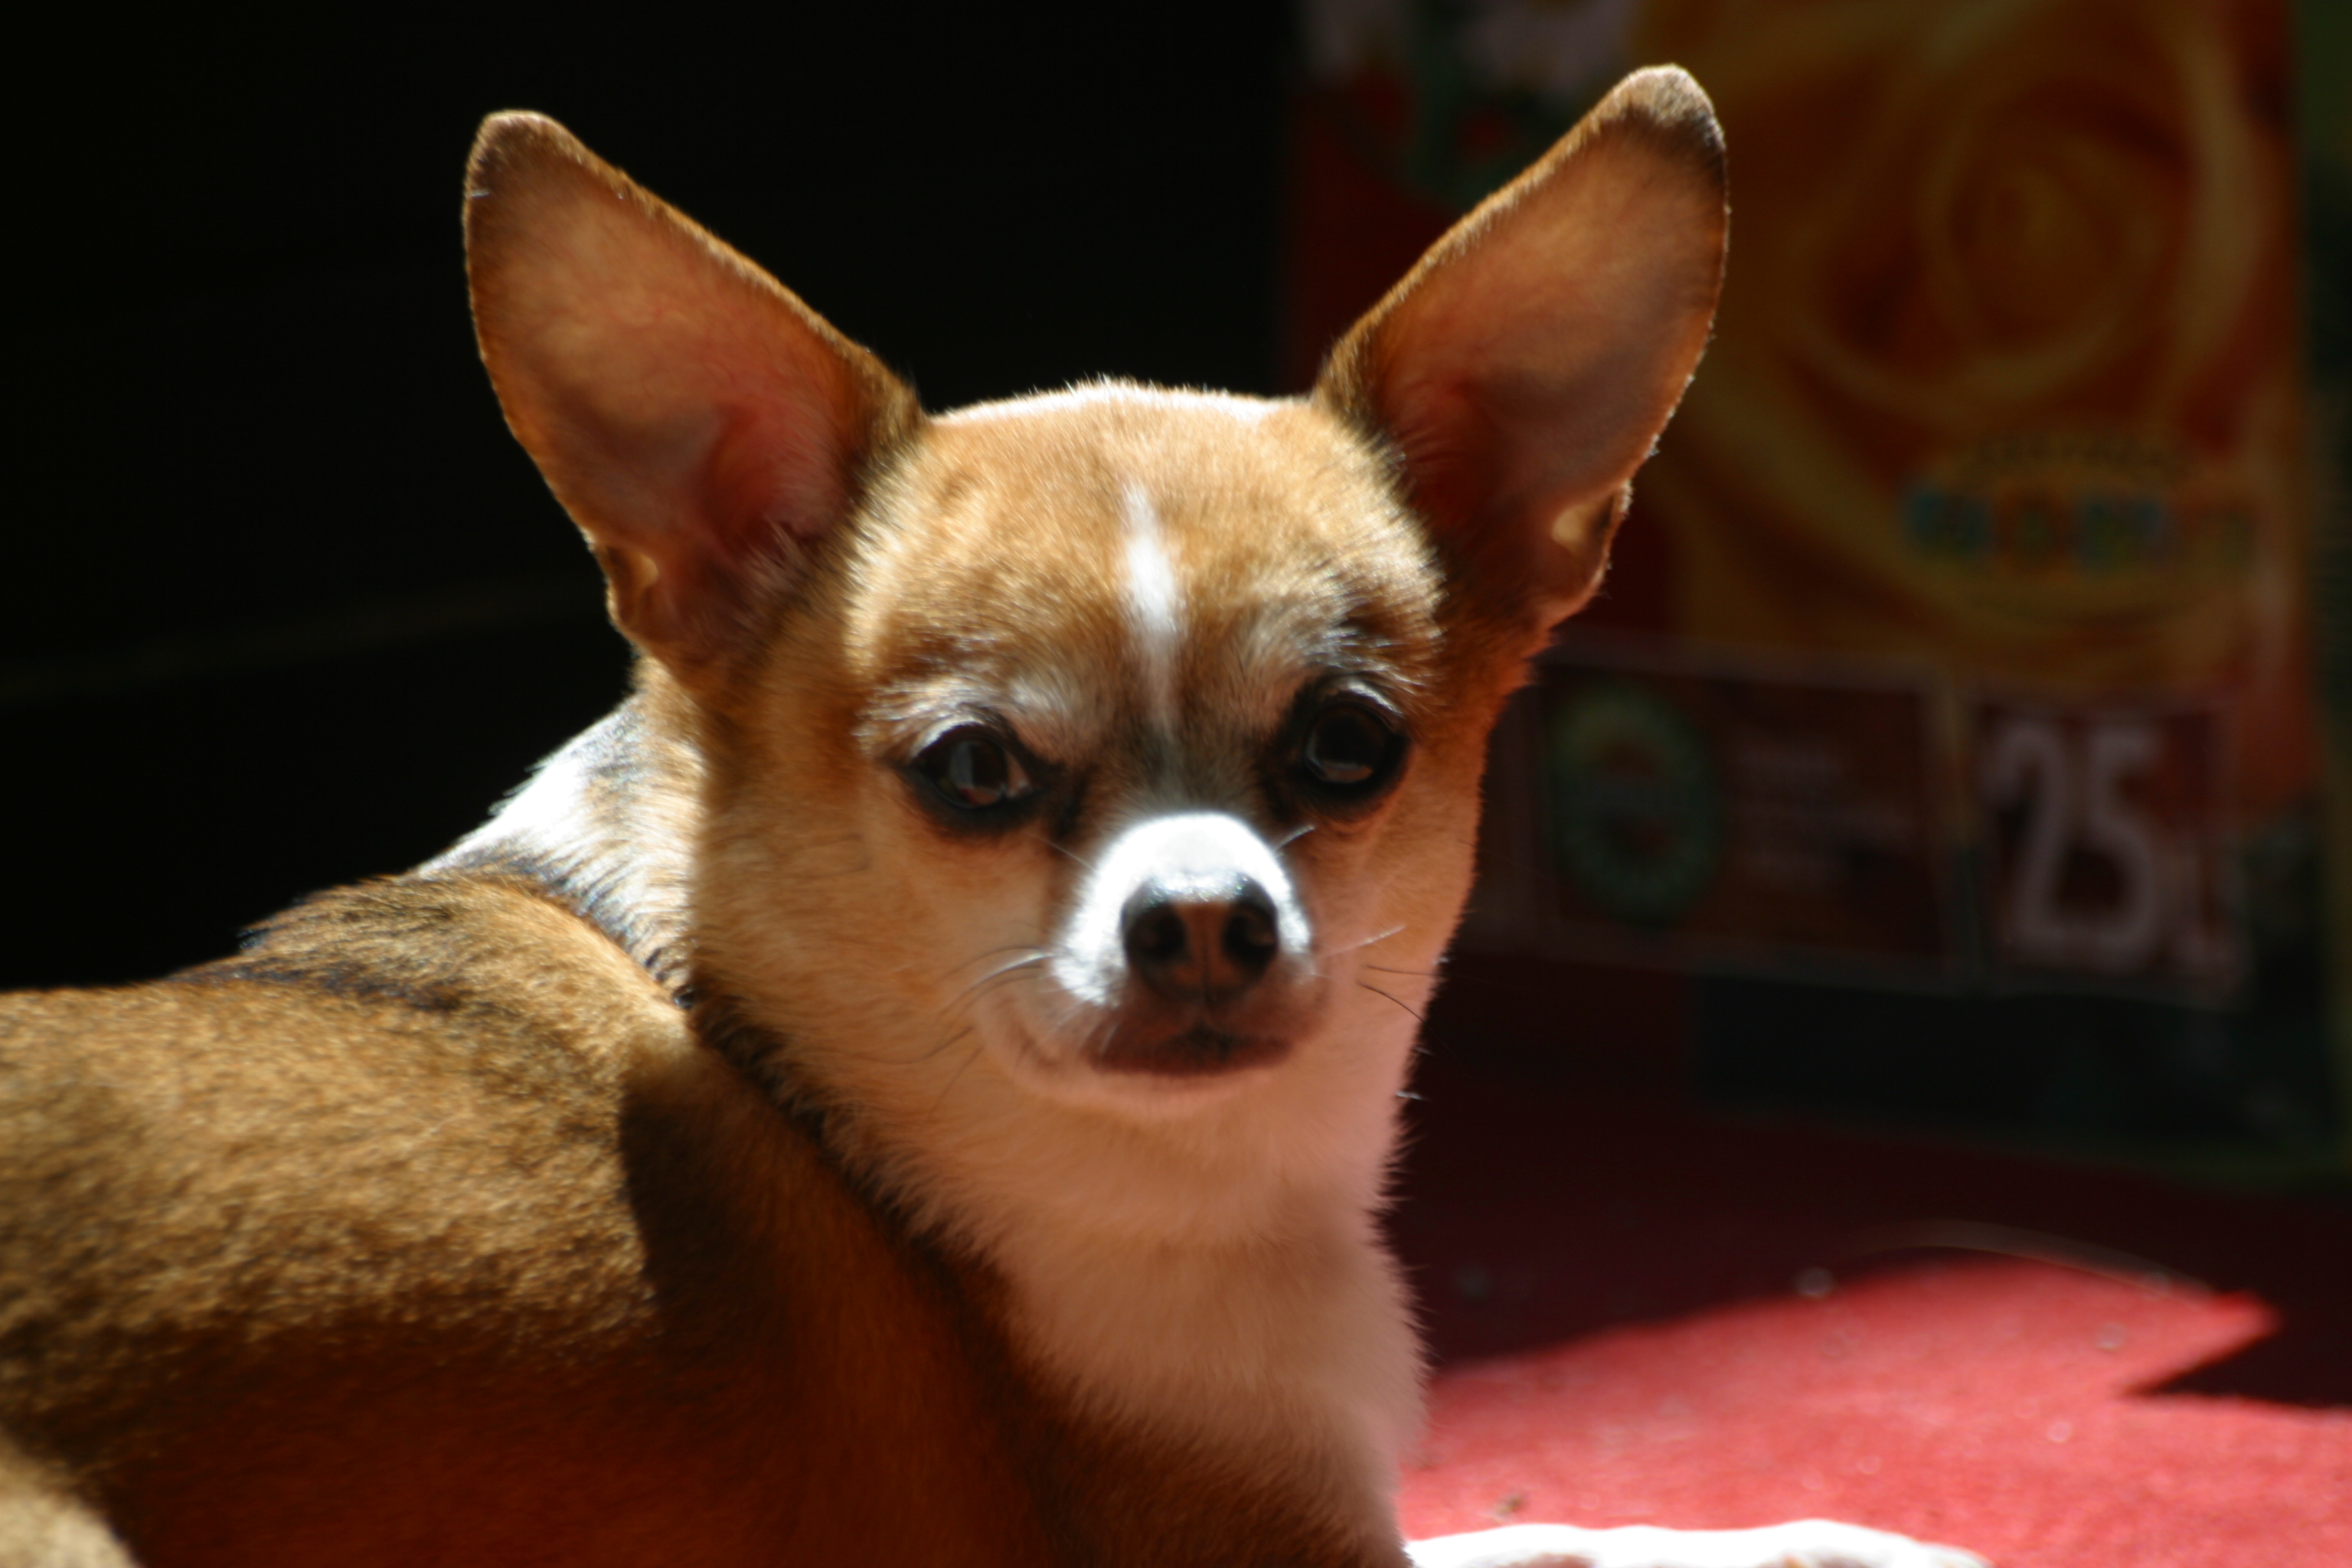 File:Tricolor-chihuahua.jpg - Wikimedia Commons